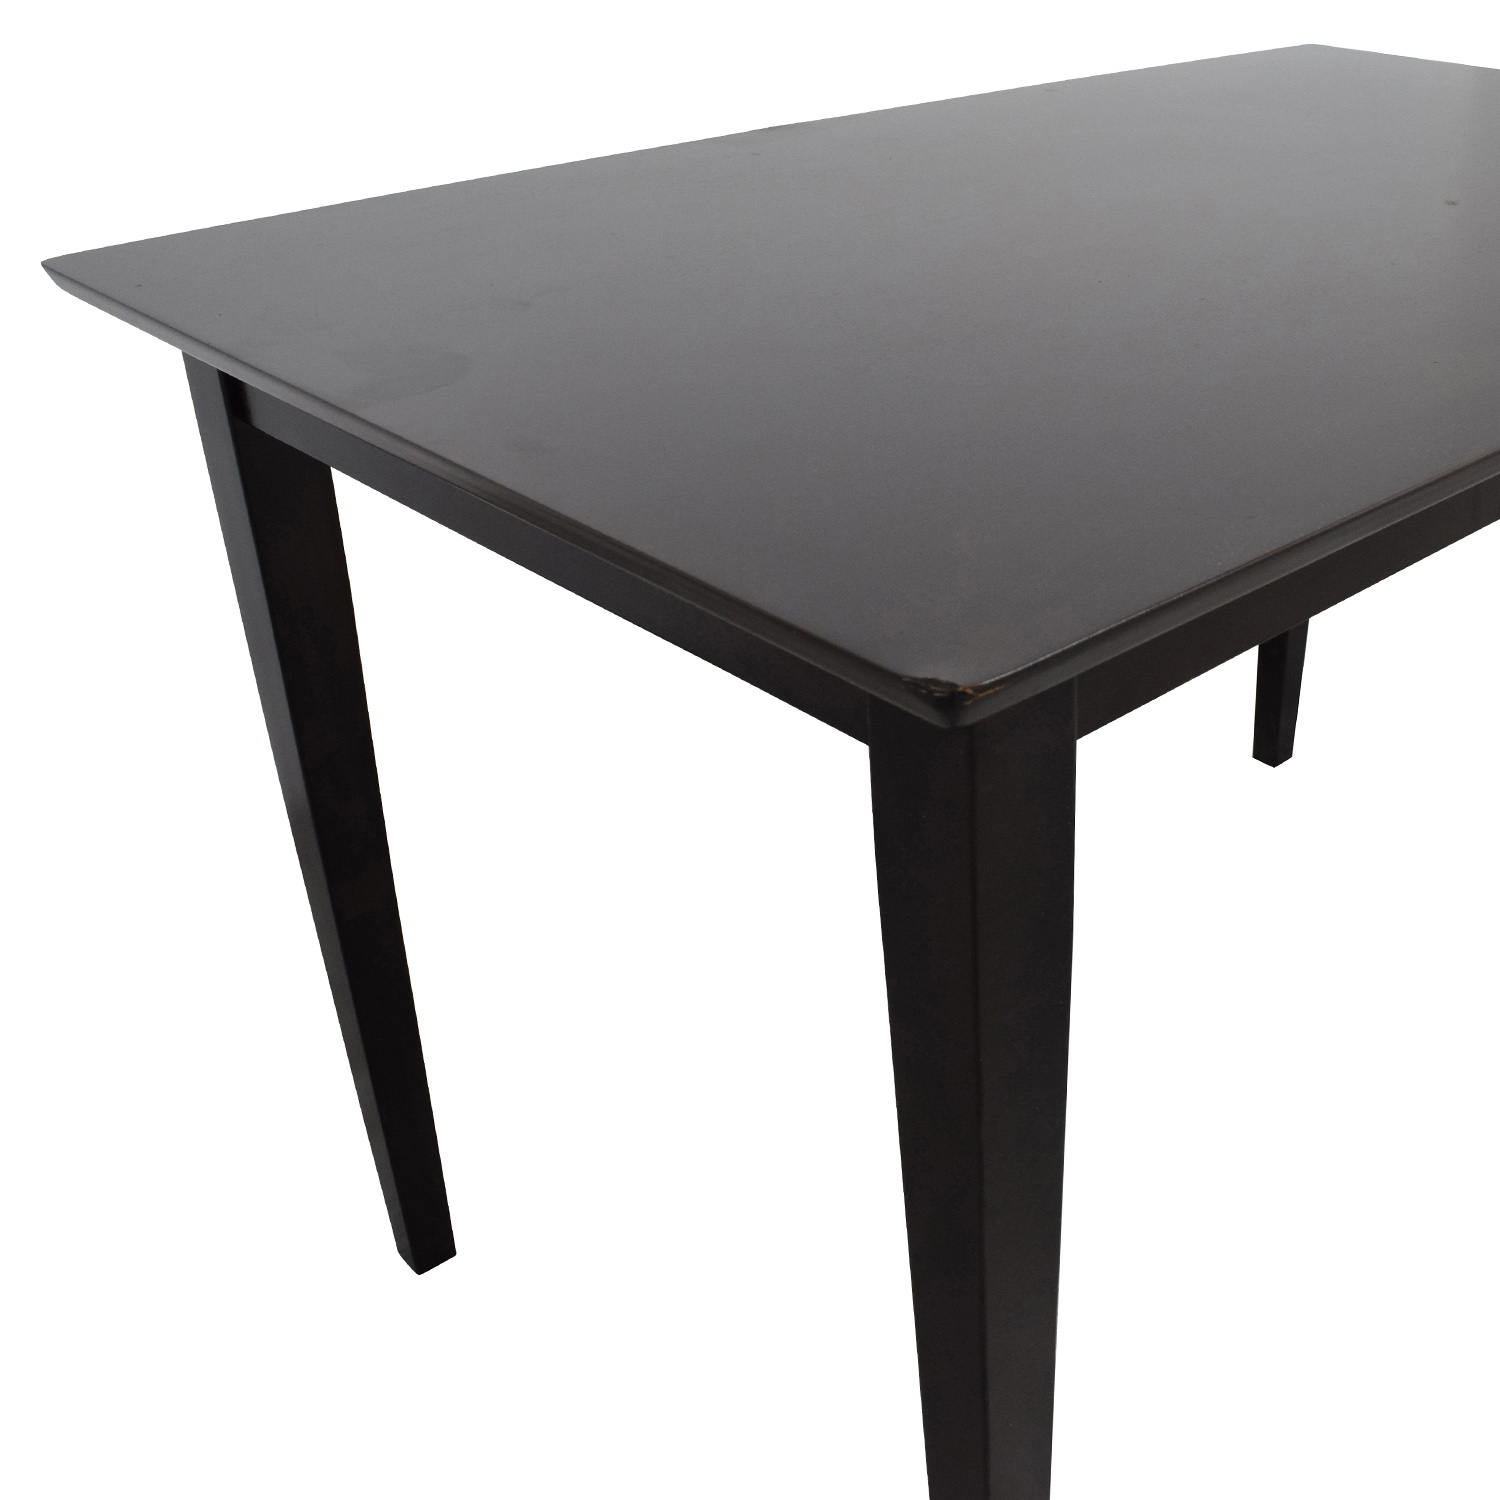 buy Coaster Home Hyde Rectangular Casual Dining Leg Table Coaster Home Furnishings Dinner Tables